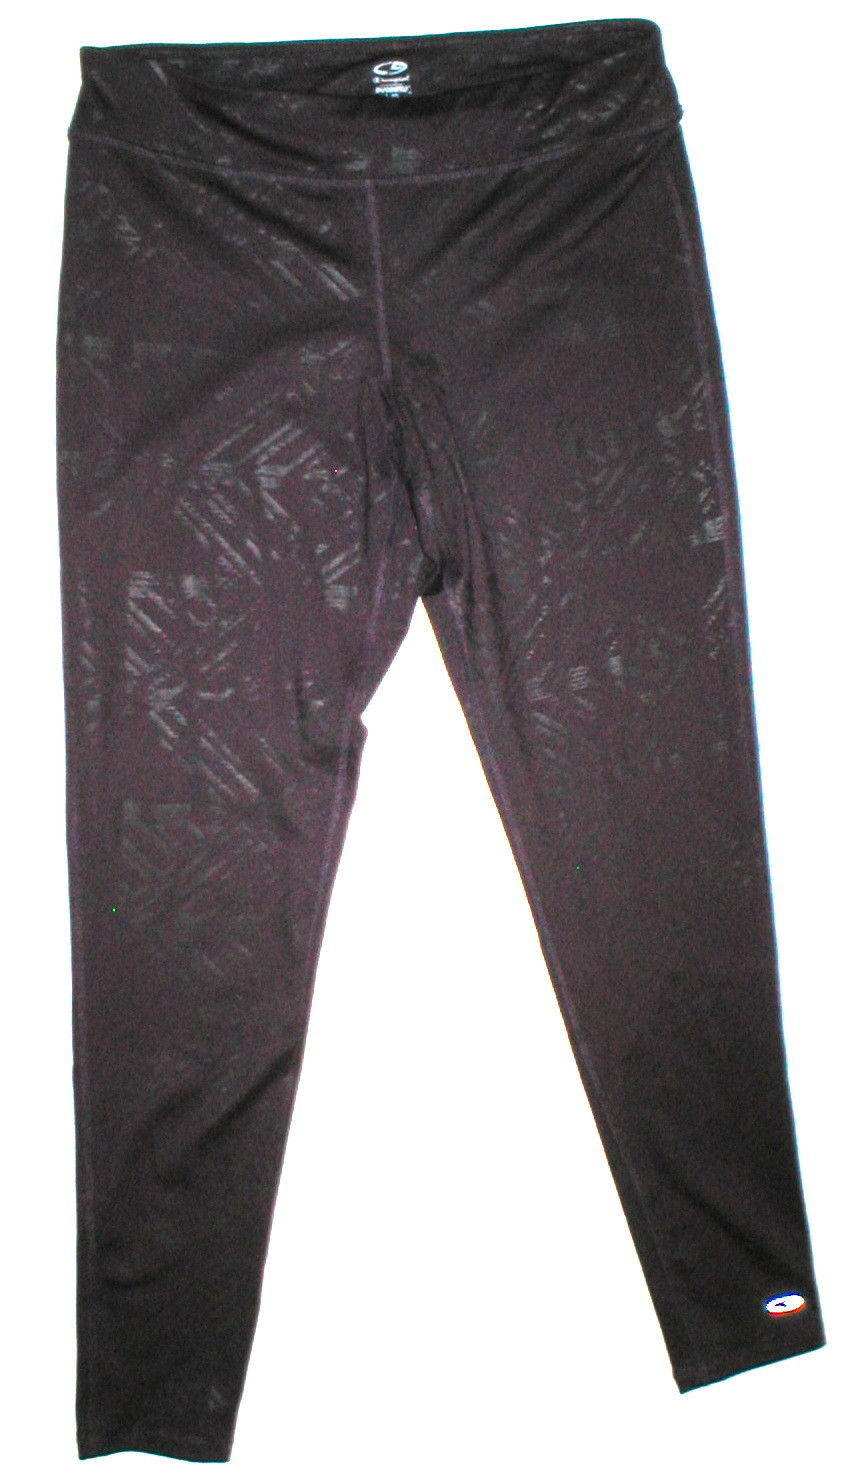 Womens Leggings C9 Champion Pants L Run Pilates Yoga Dark Purple Black Foil